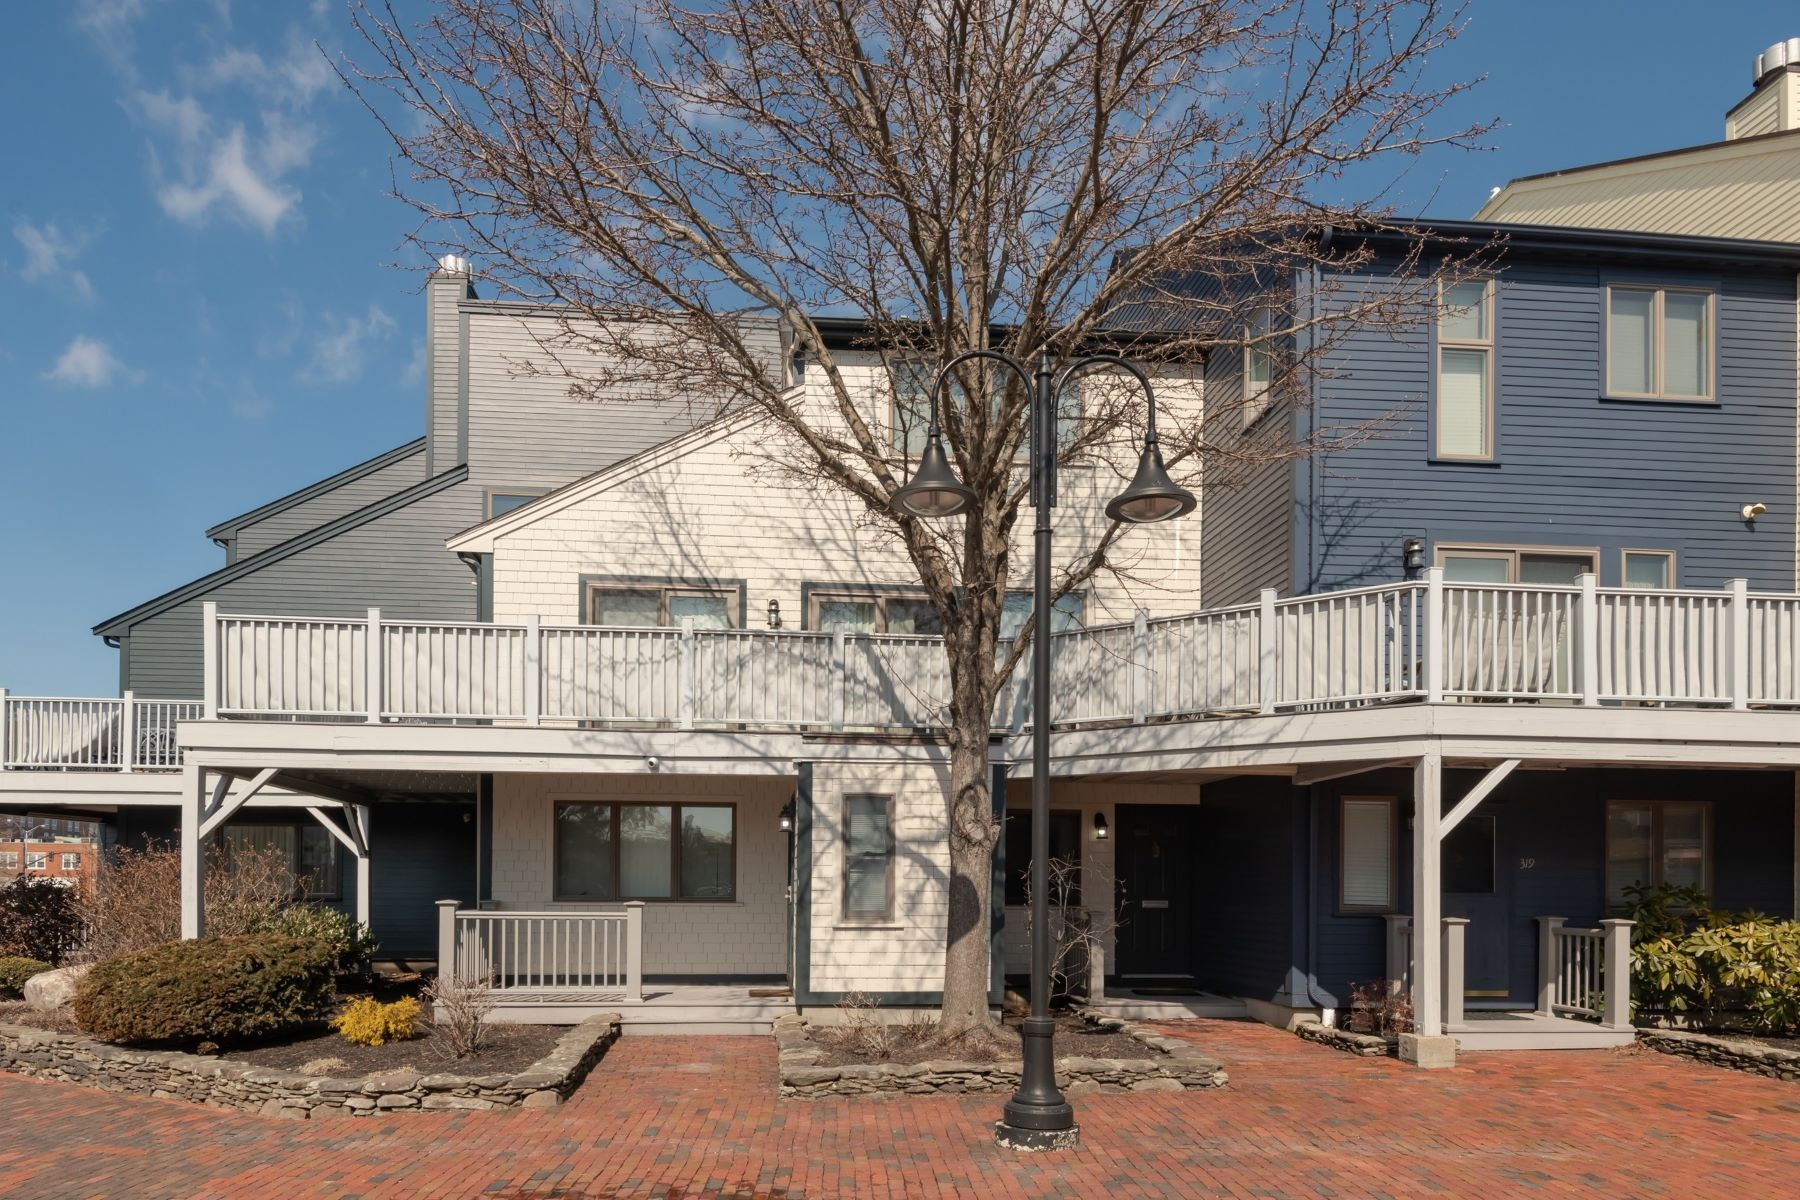 Additional photo for property listing at Brick Market Corner Townhouse 317 Swans Wharf Row Newport, Rhode Island 02840 United States